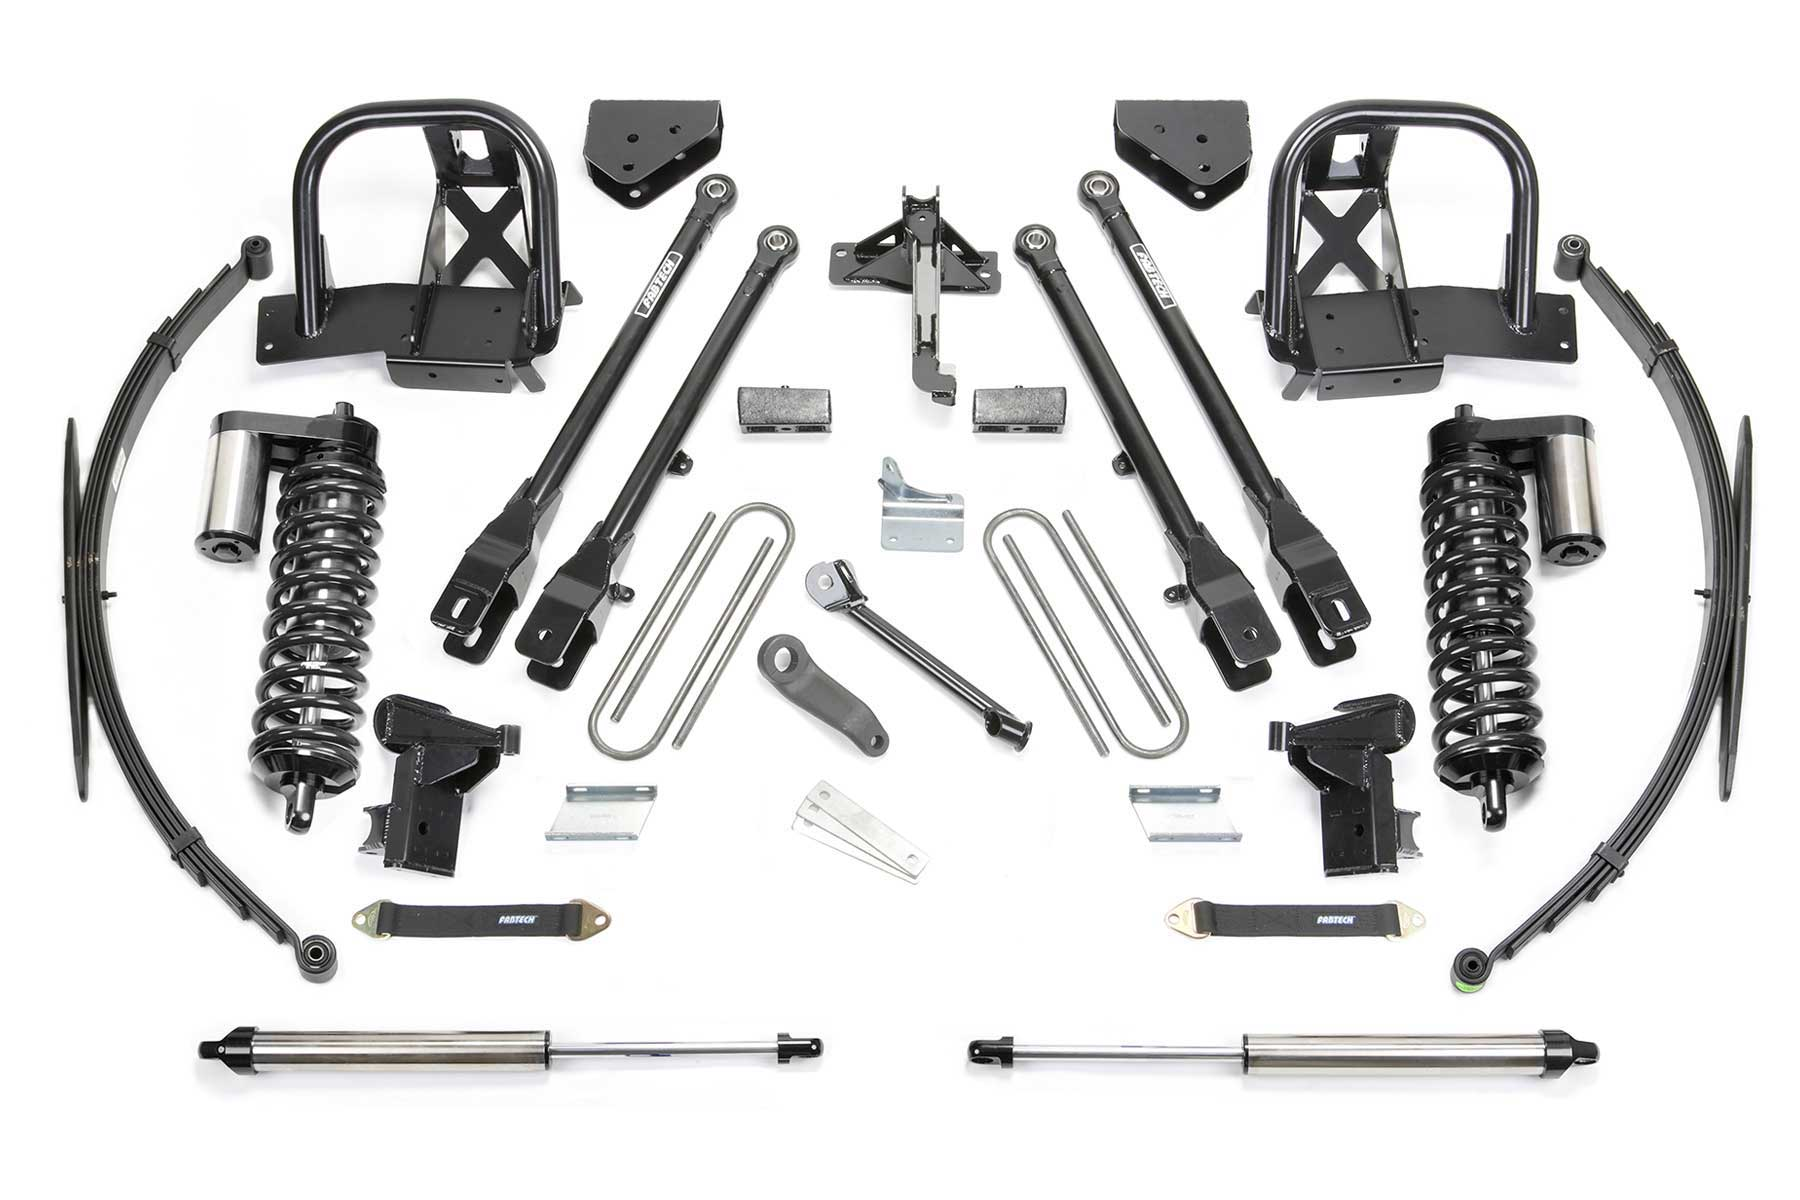 10″ 4 Link System w/ Dirt Logic 4.0 Coilovers & Rear Dirt